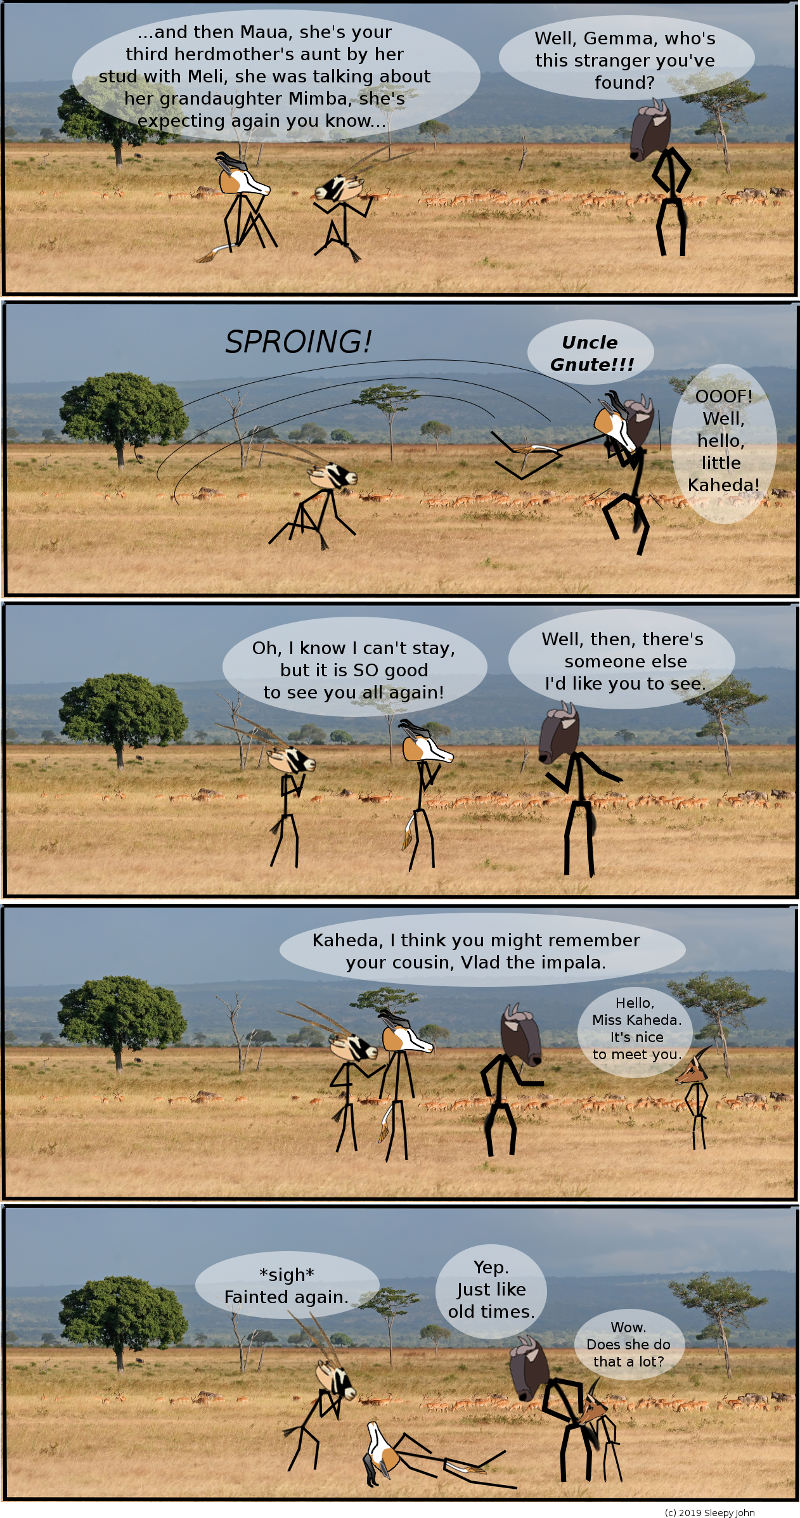 on graphic enabled browsers, the image http://www.hirezfox.com/neoctc/comics/nc20190619.png would be displayed here